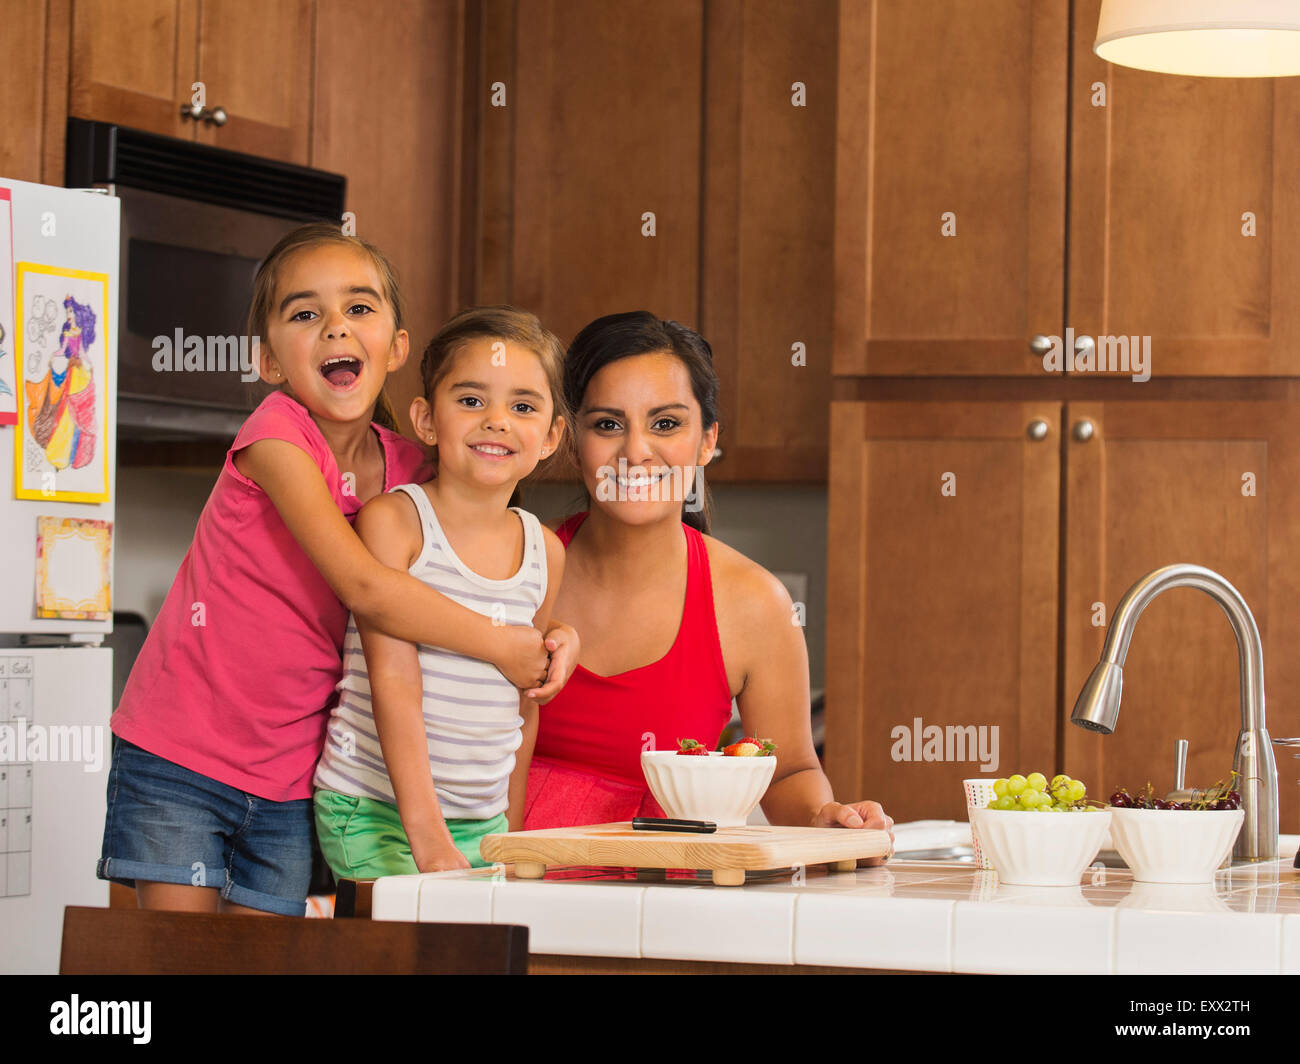 Mother and children (6-7, 8-9) preparing food in kitchen - Stock Image